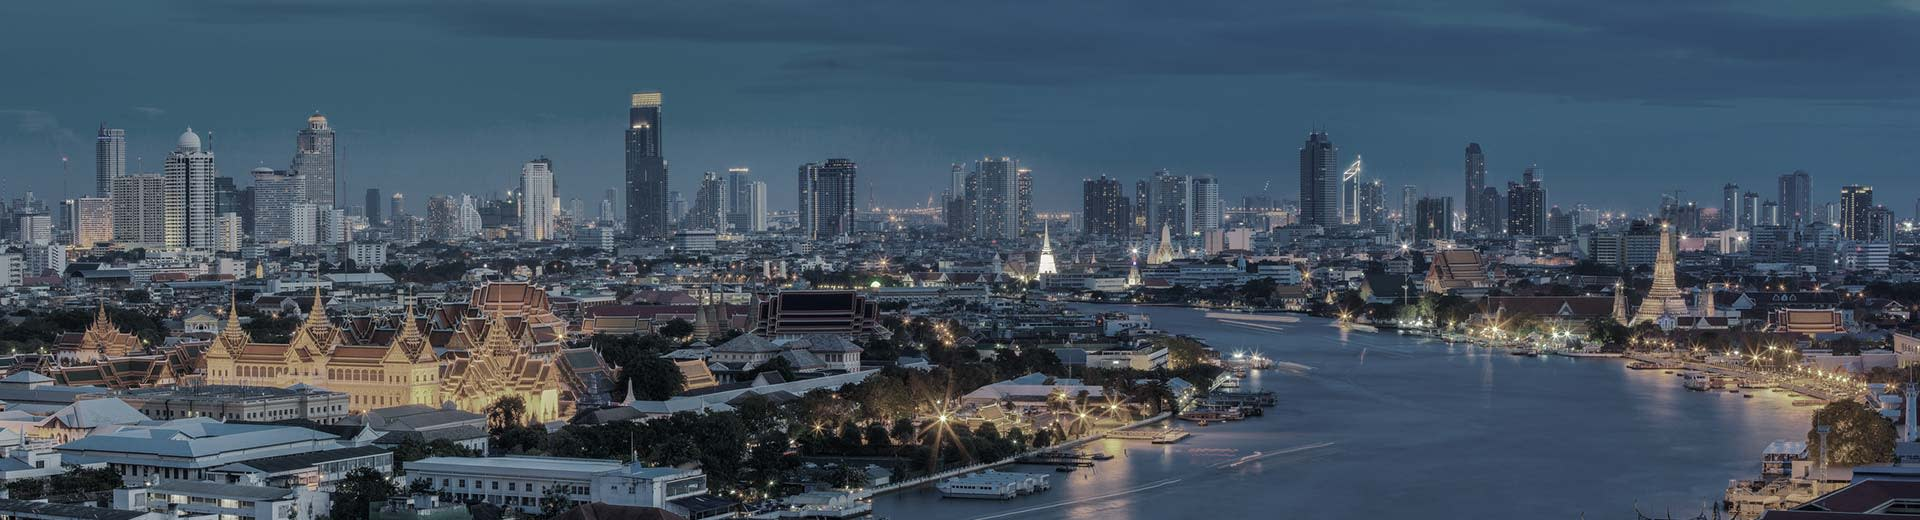 View of Bangkok skyline on a clear evening with the city lights creating a glow.